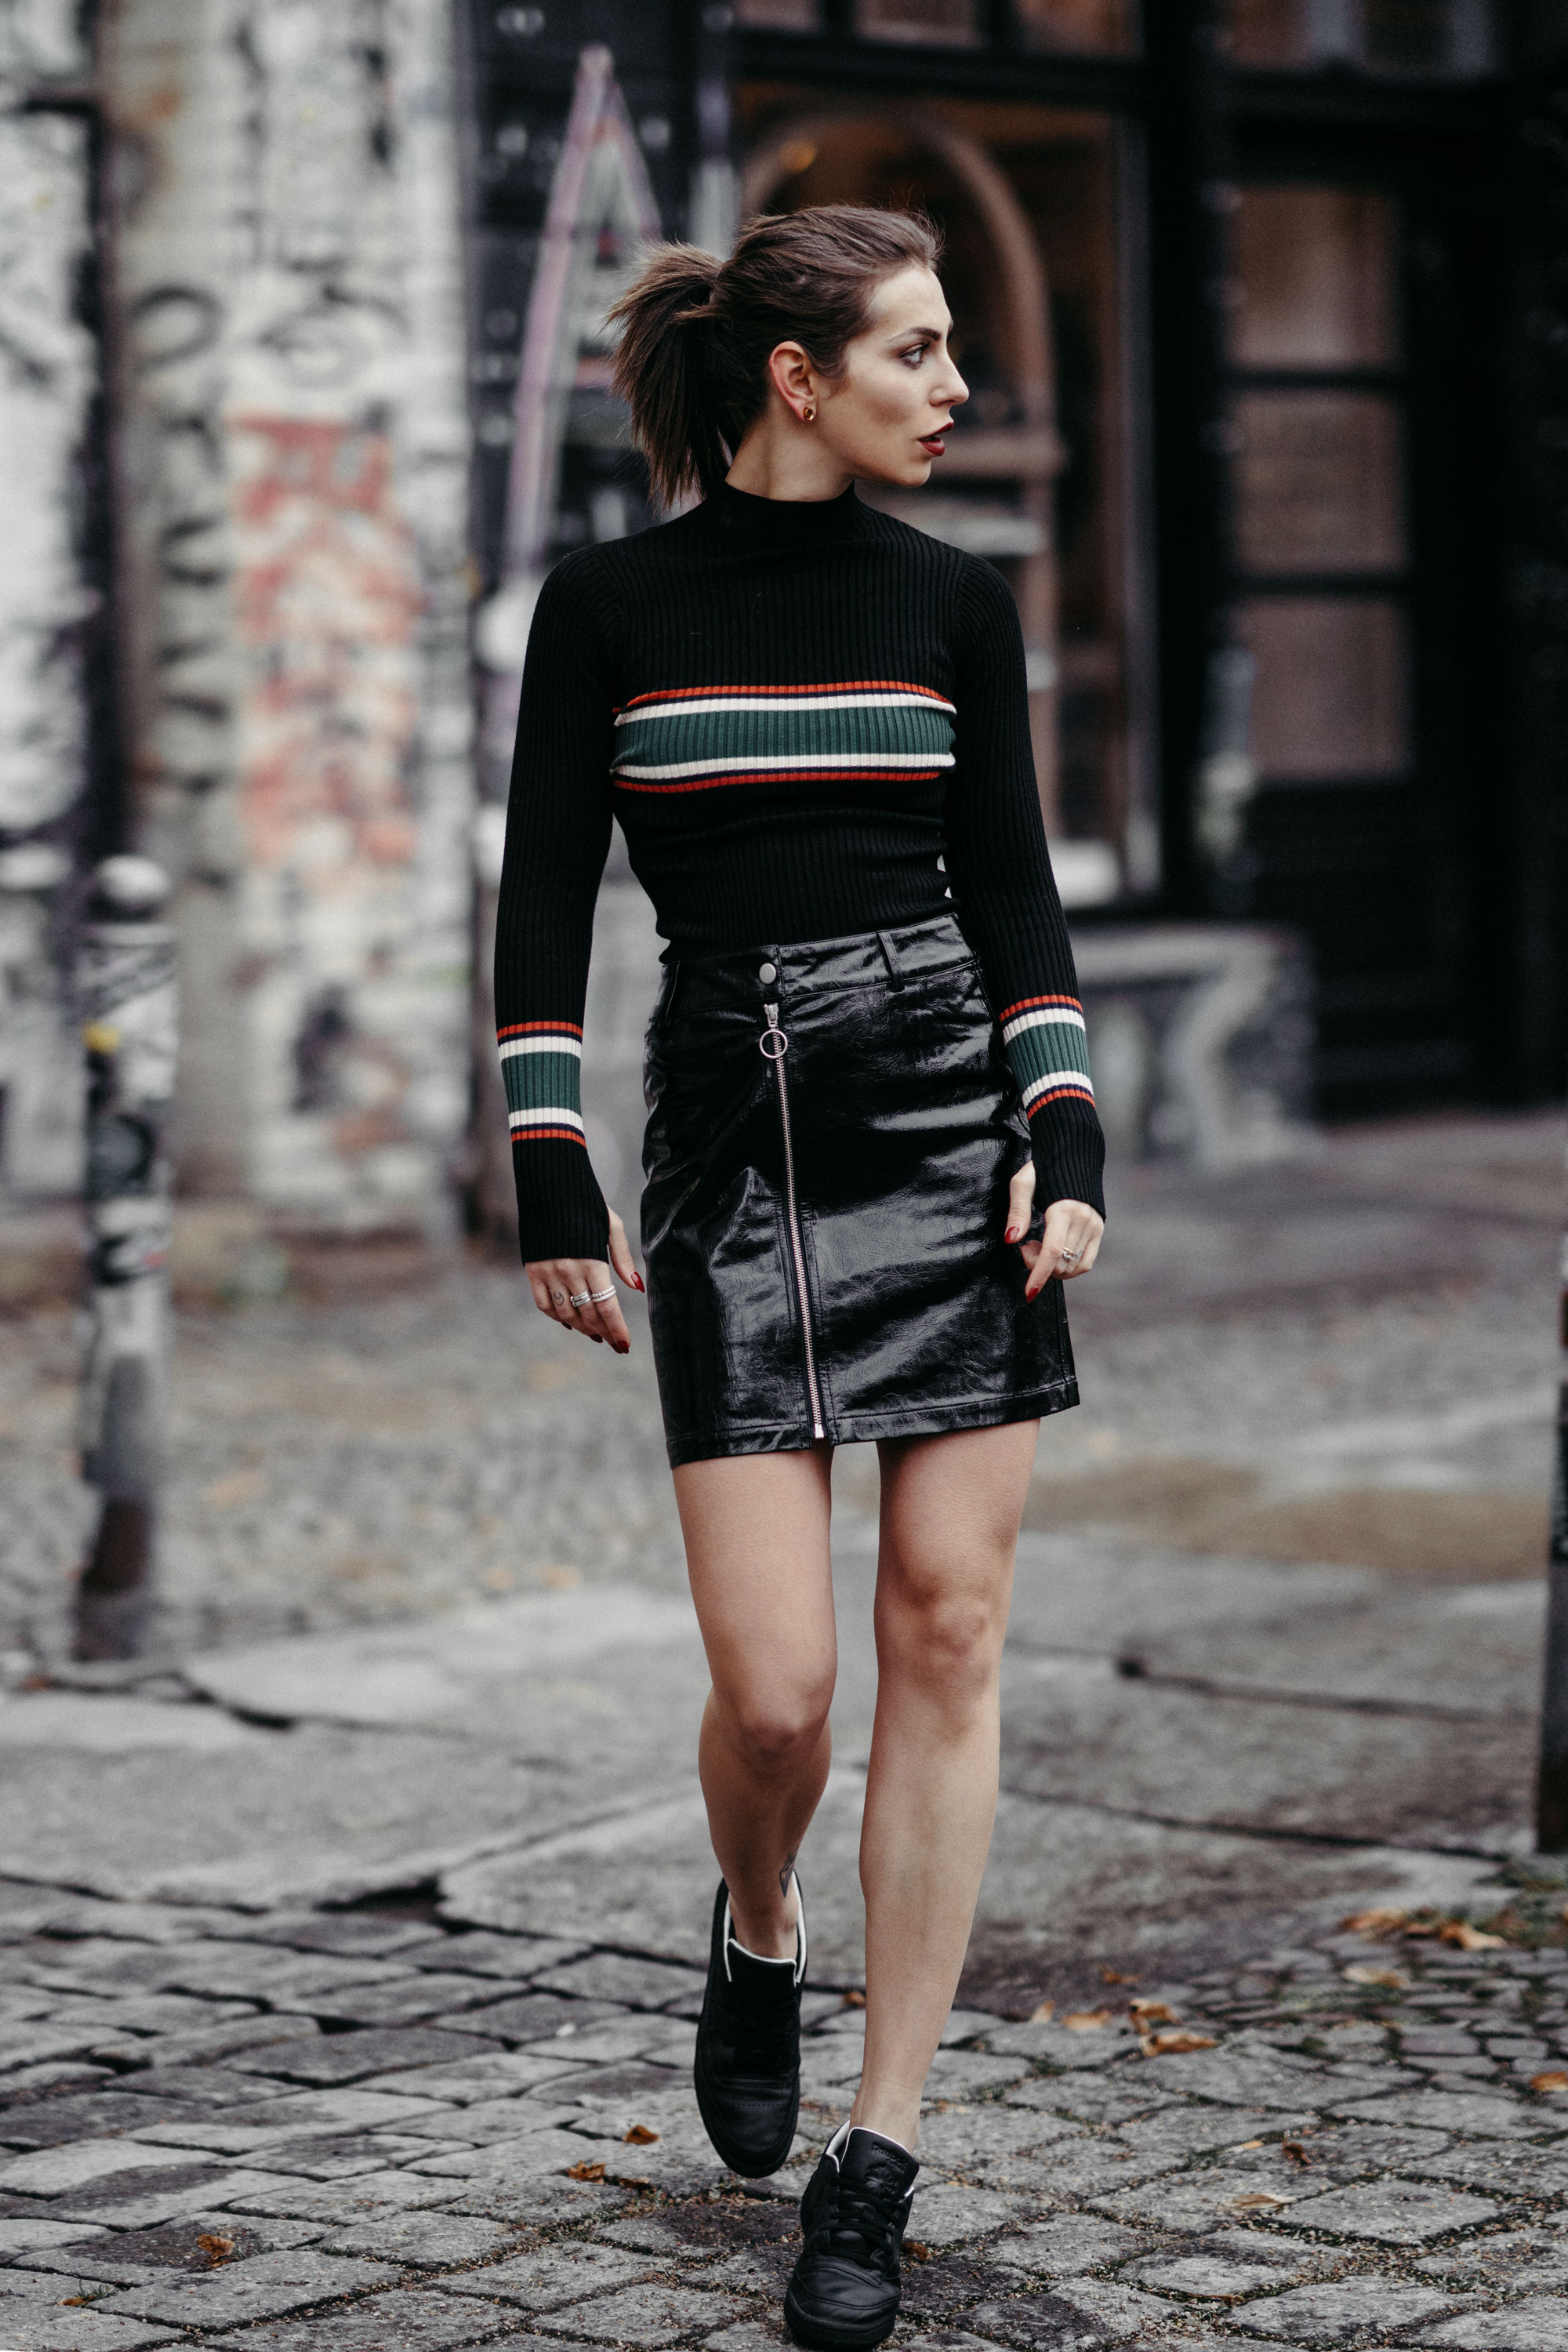 Zalando Style of the Day | Masha Sedgwick | Street Style | Mode | Marken: Topshop, Ivy Revel, Vans, Selected Femme, The Kooples, Holzweiler | Berlin | Street Wear zum Nachstylen | Alltag | Wochenrückblick | 2018